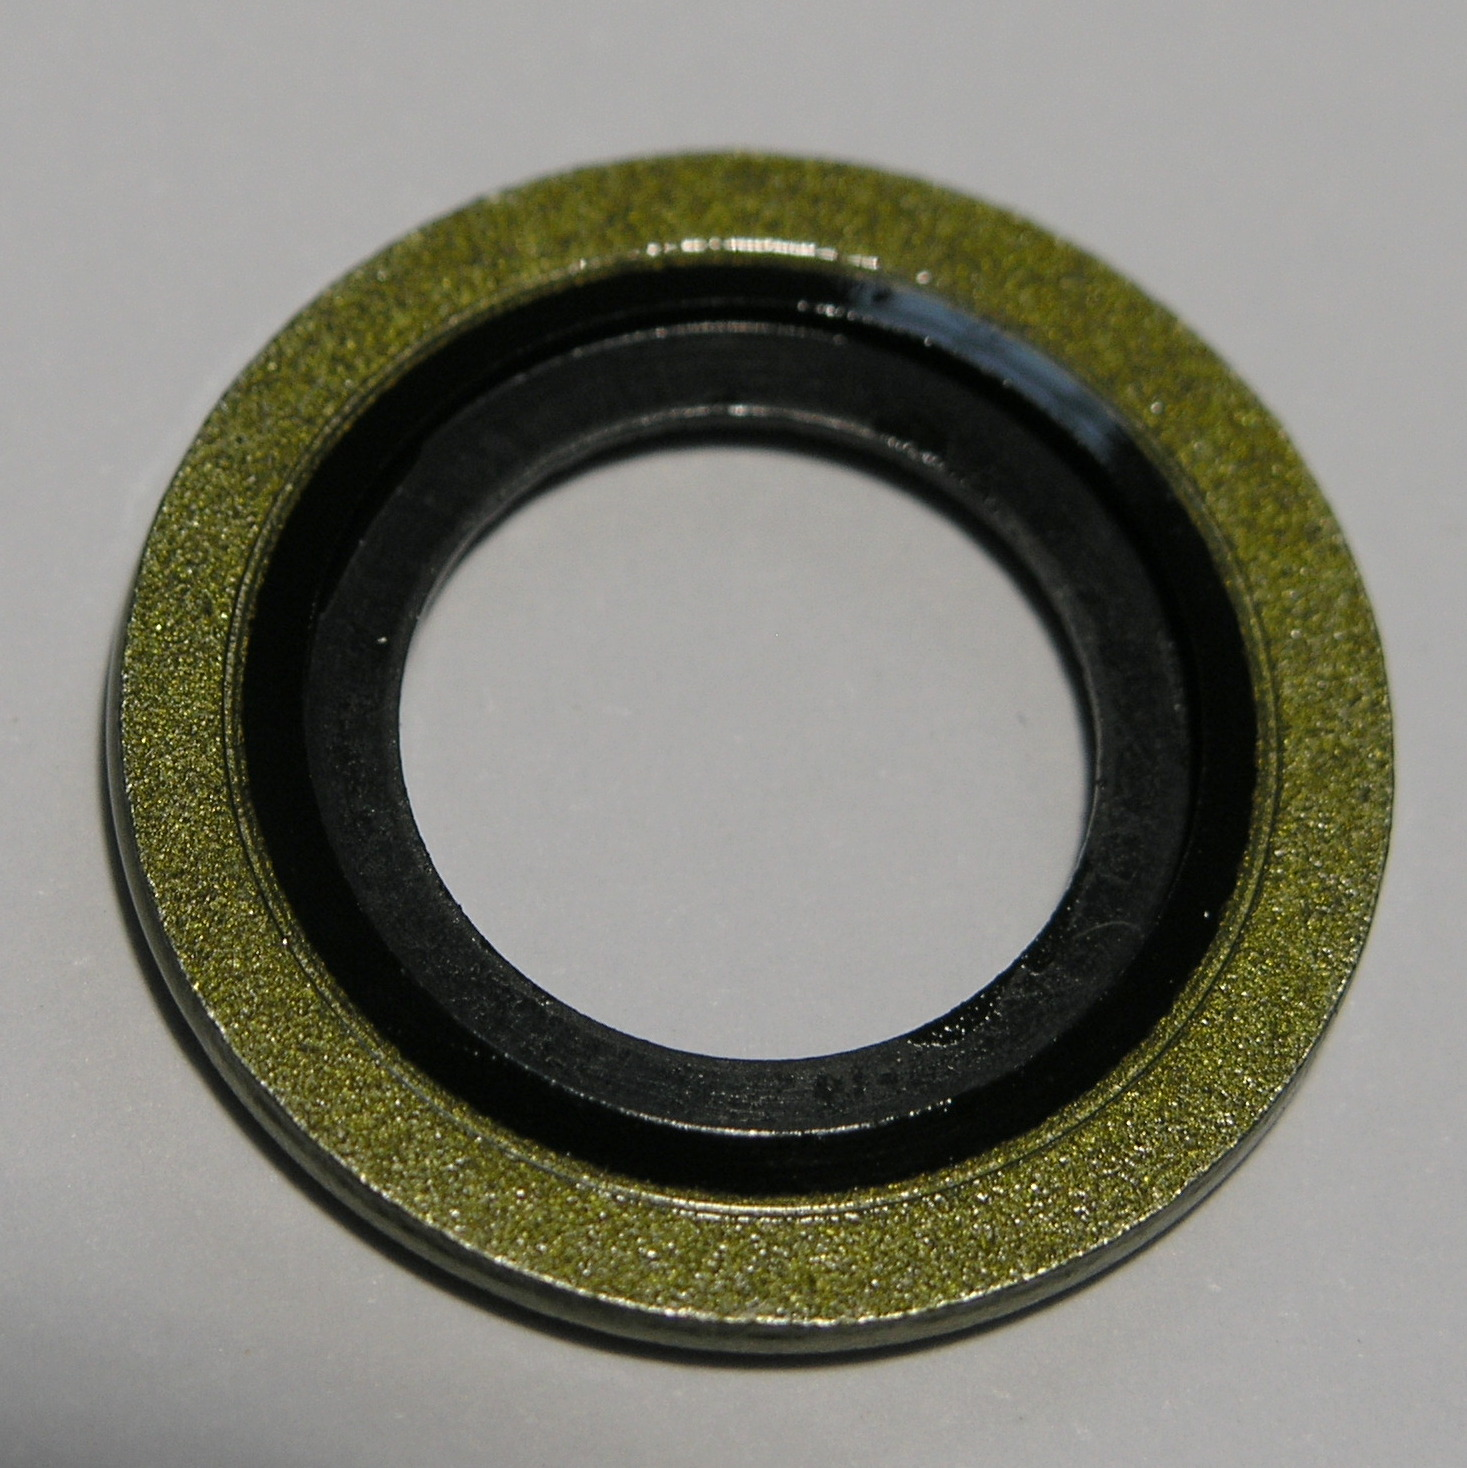 bonded-seal-with-thread-retainer-bac16.7-x-24.2-x-2-sump-plug-washer.jpg